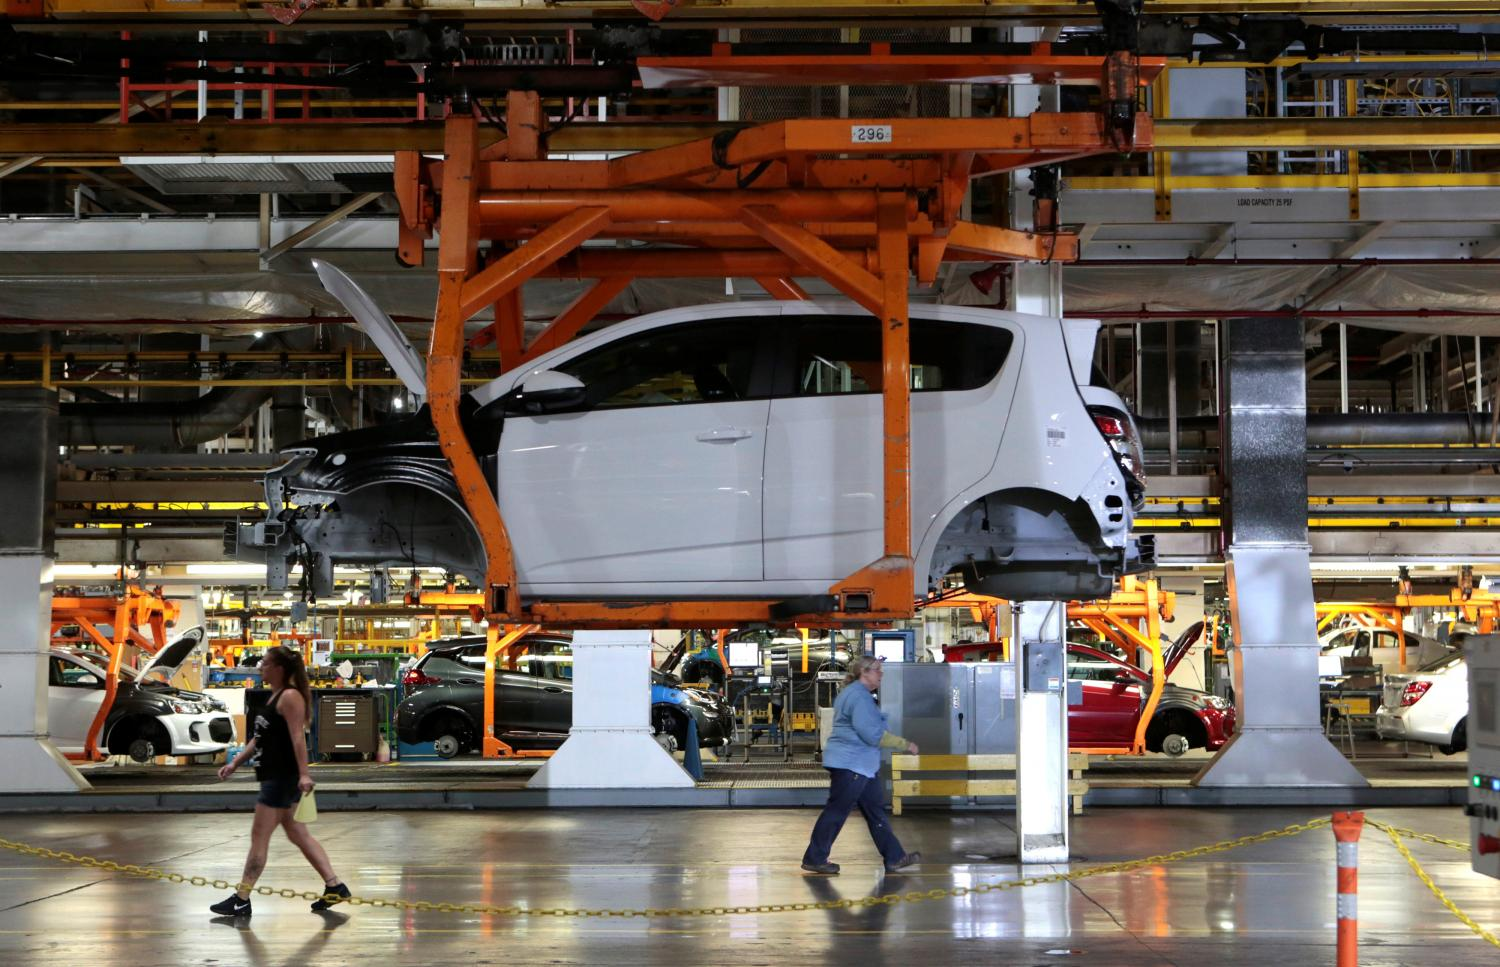 A partially assembled 2017 Chevrolet Bolt EV is on the assembly line at GM's assembly plant in Orion. The company said it would spend $27 billion through 2025 to develop EVs and driverless vehicles.